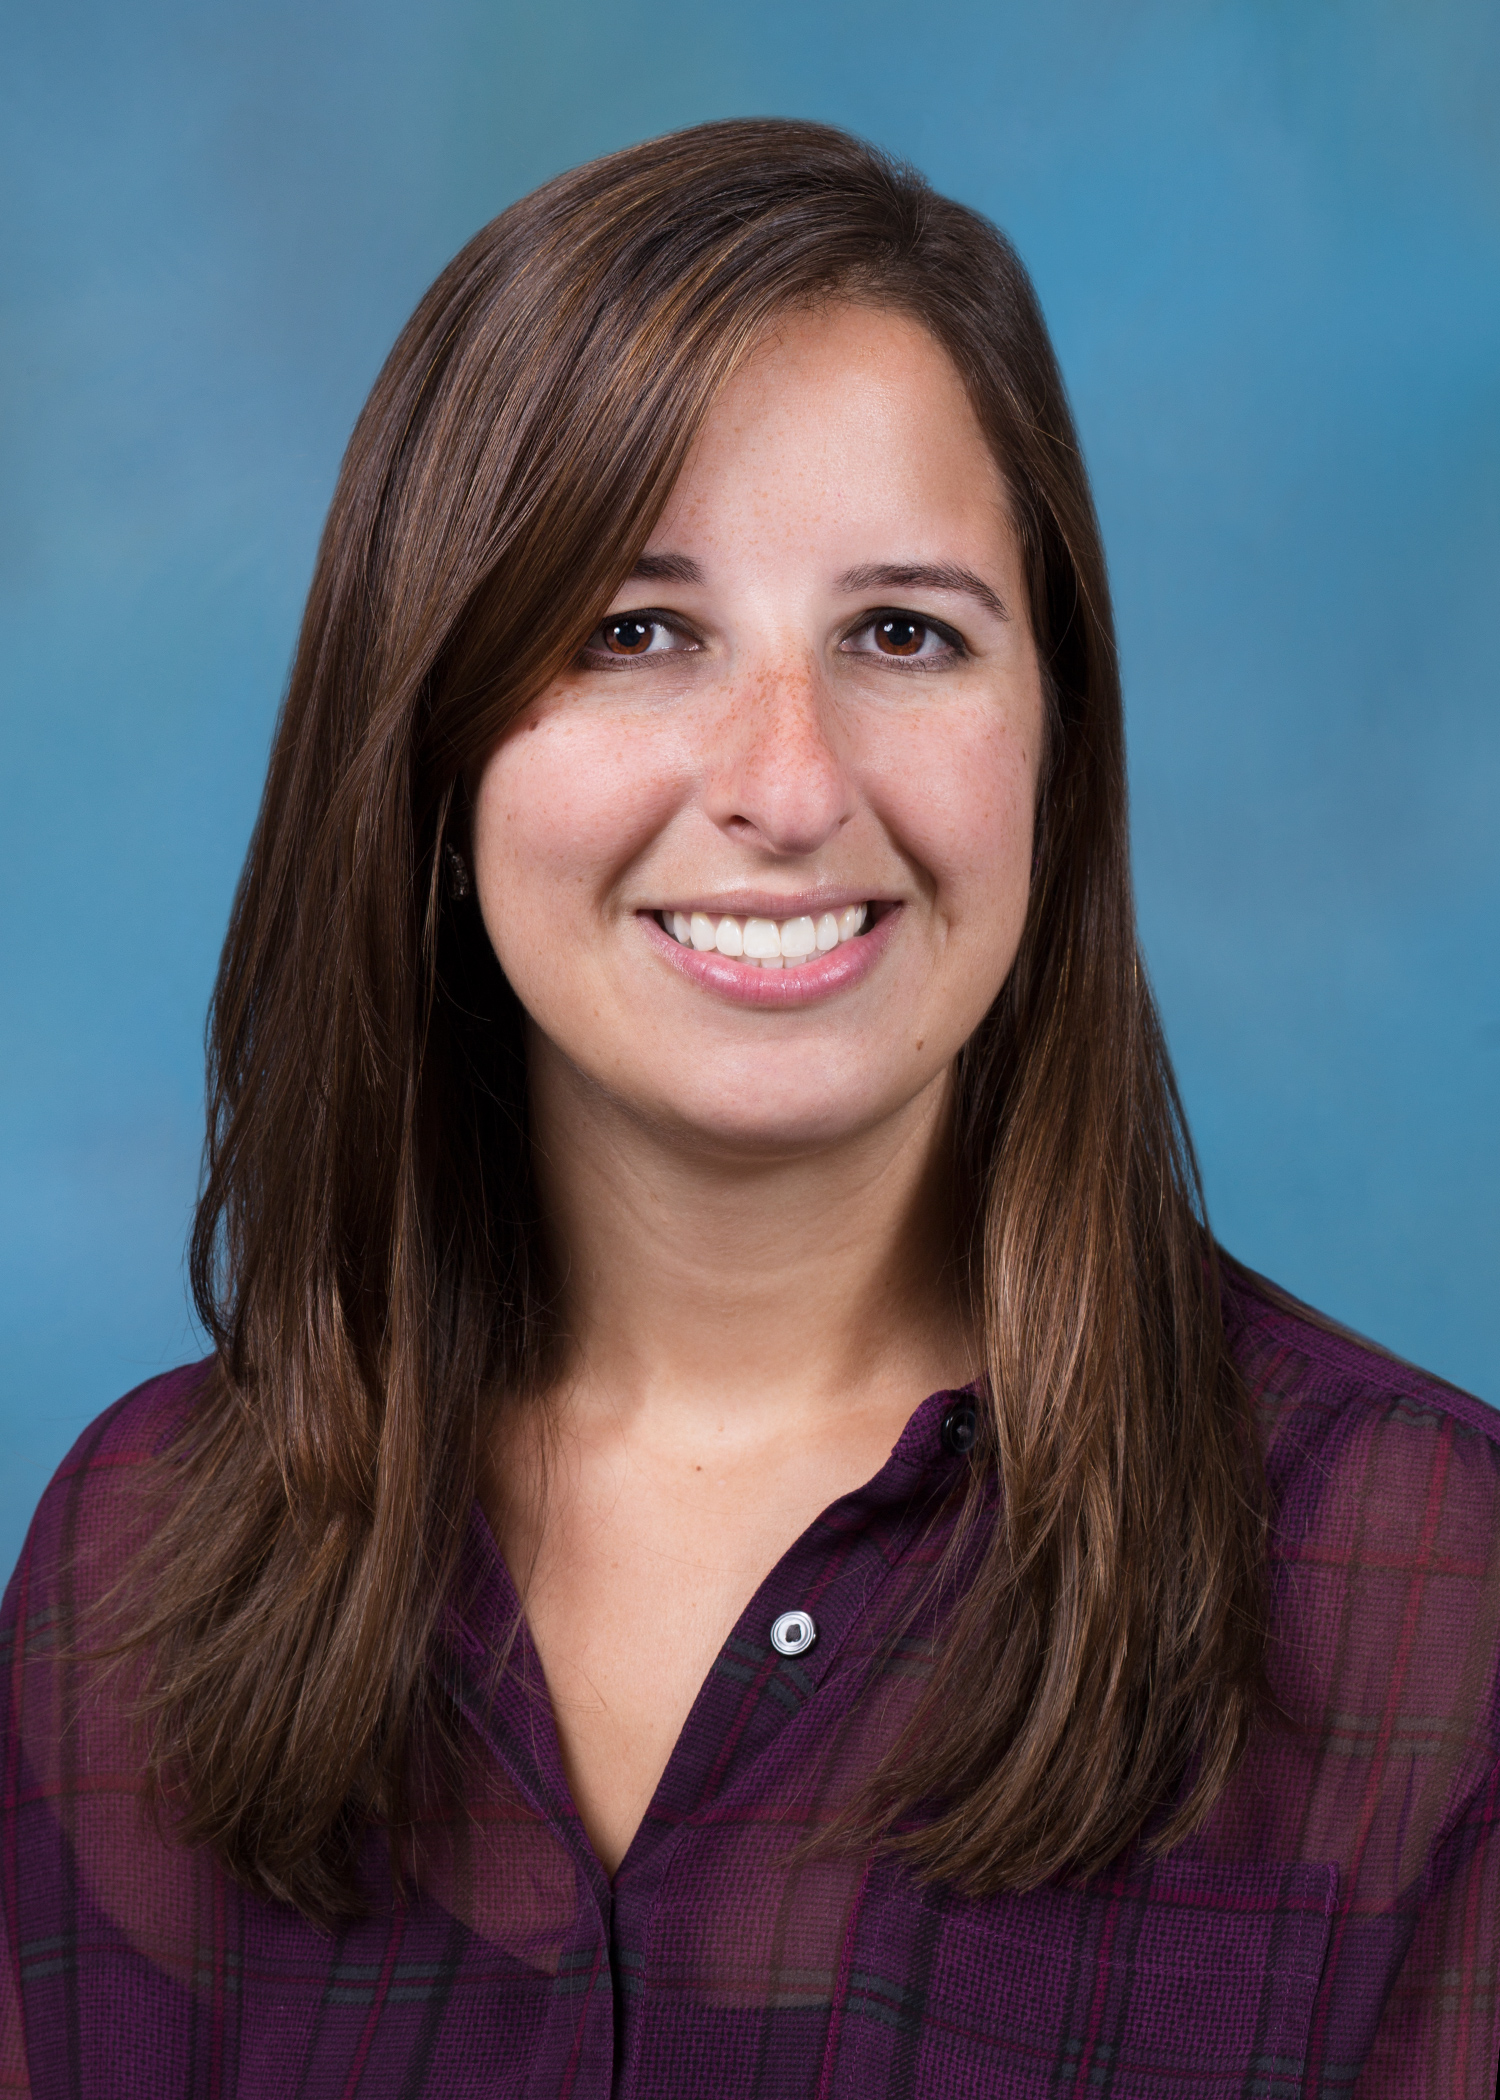 Nikki Natoli, Annual Giving Manager